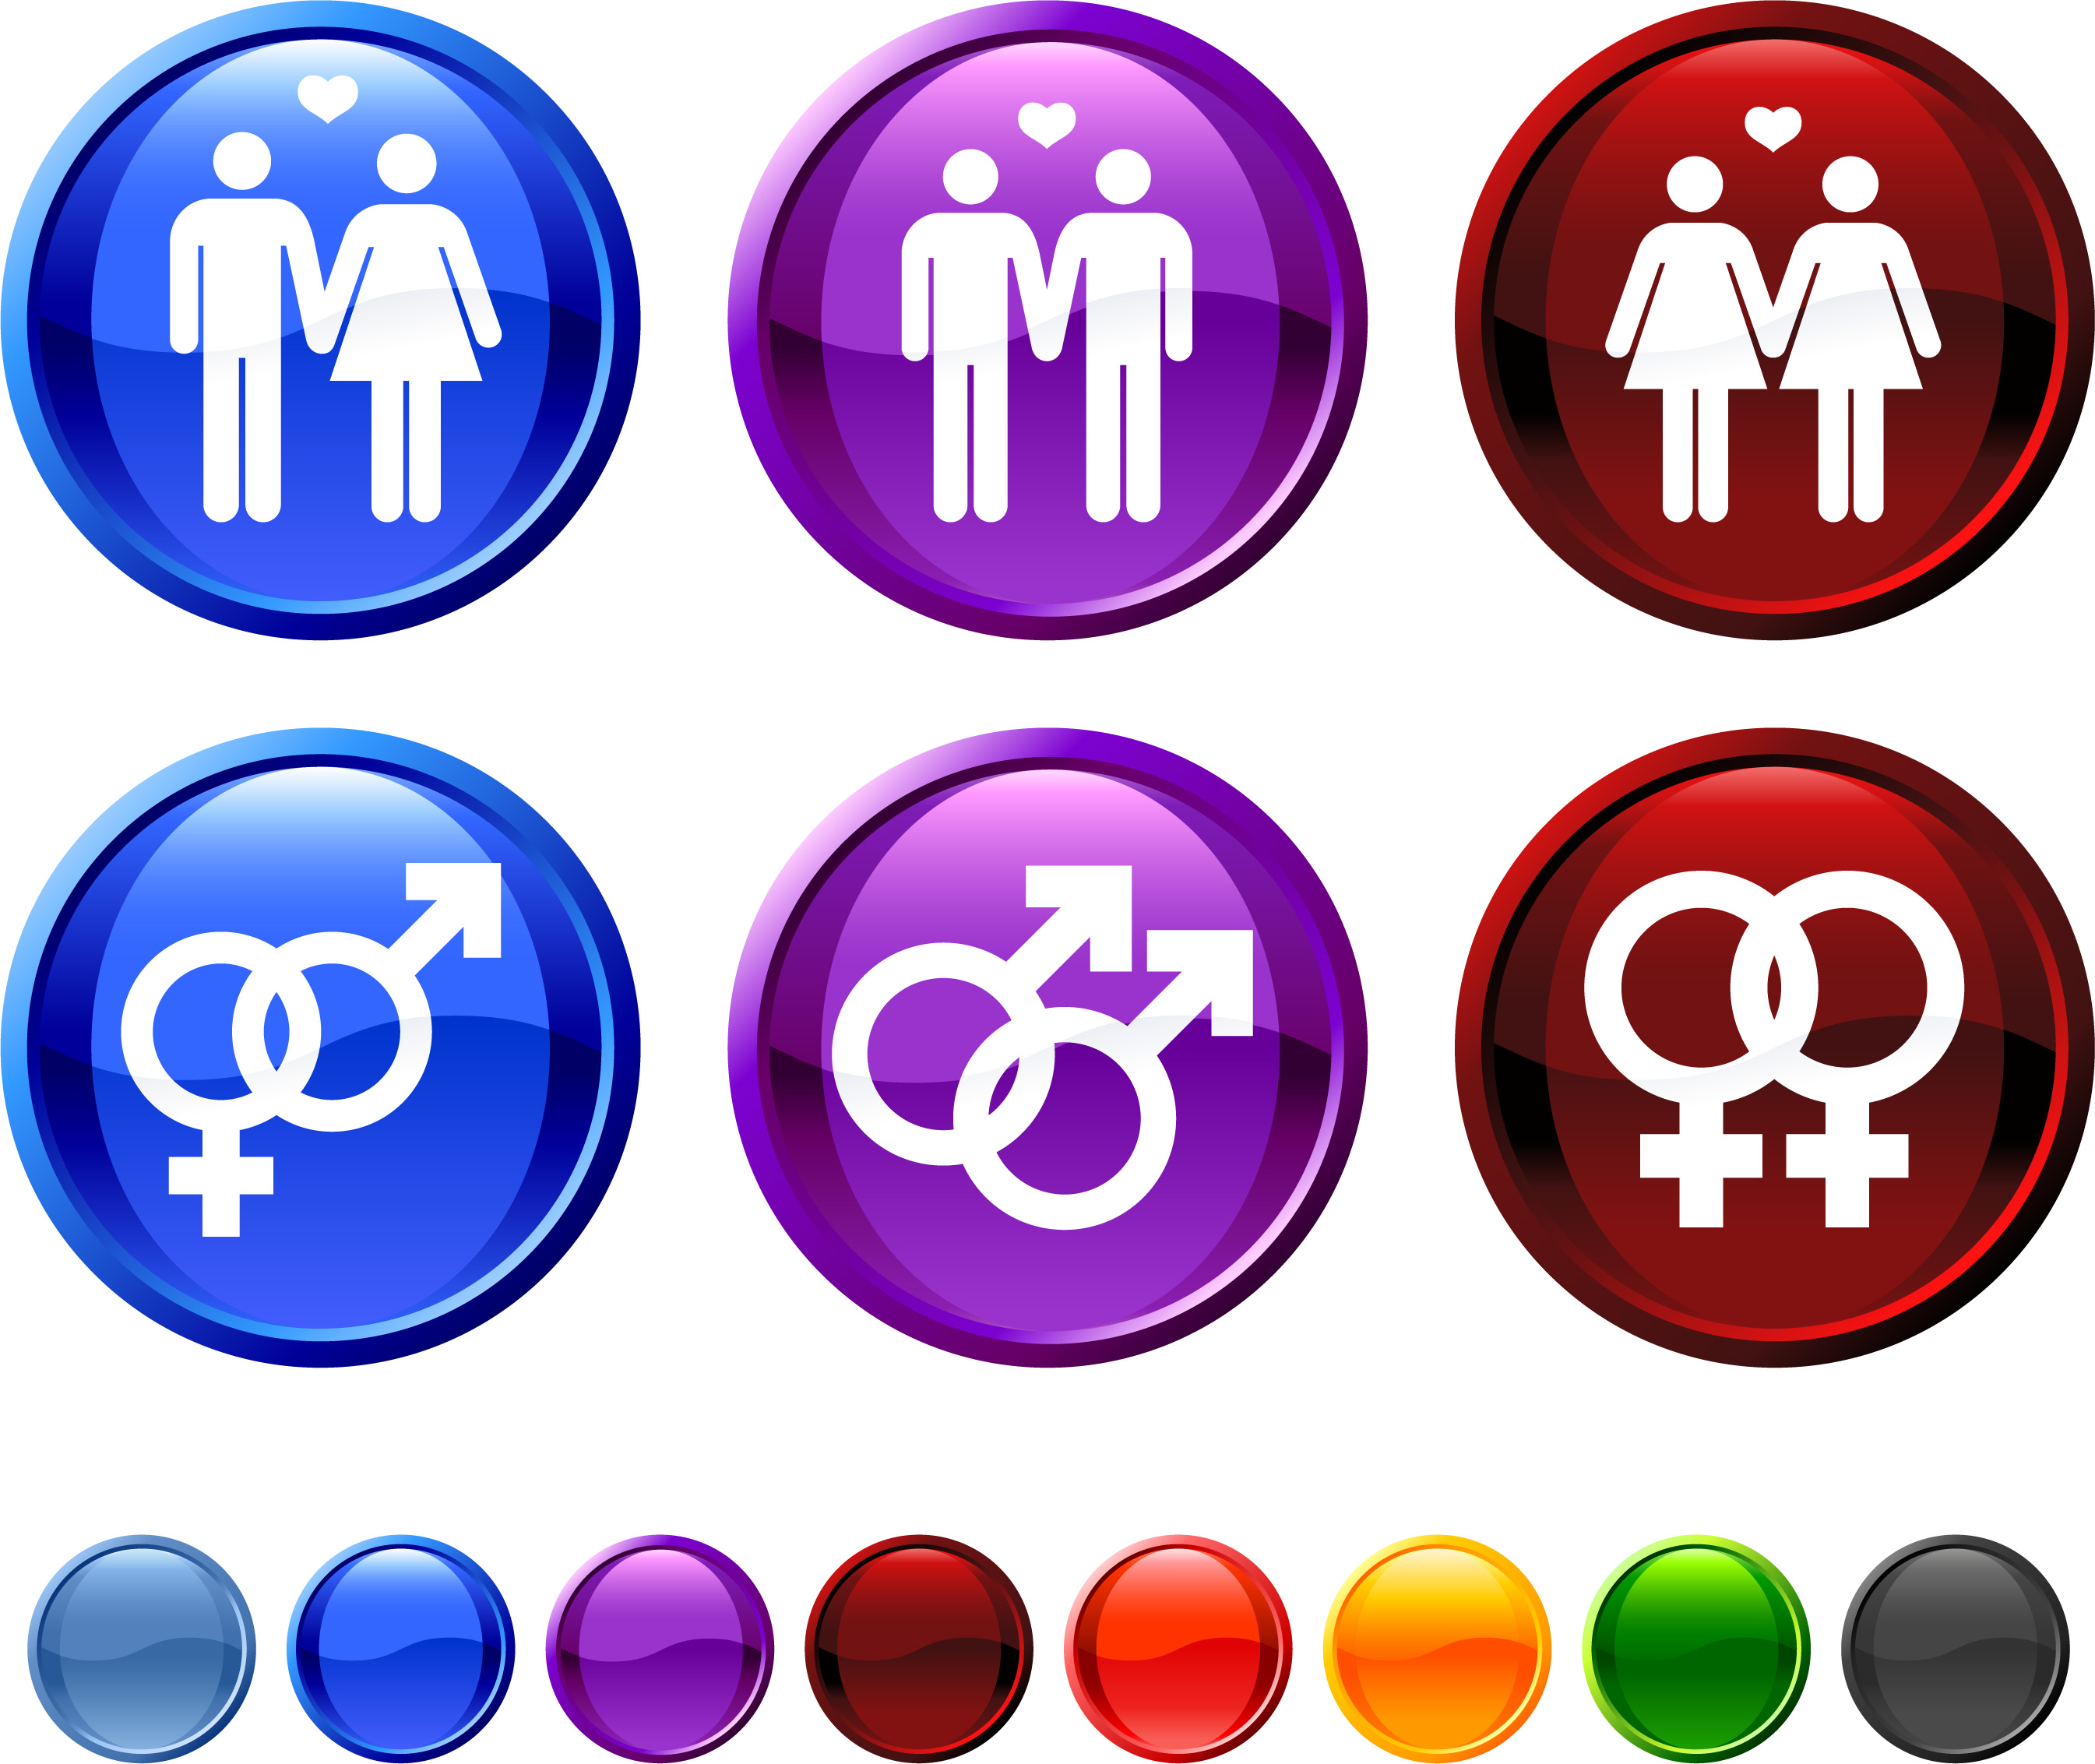 LLM-Gender-Sexuality-and-Human-Rights